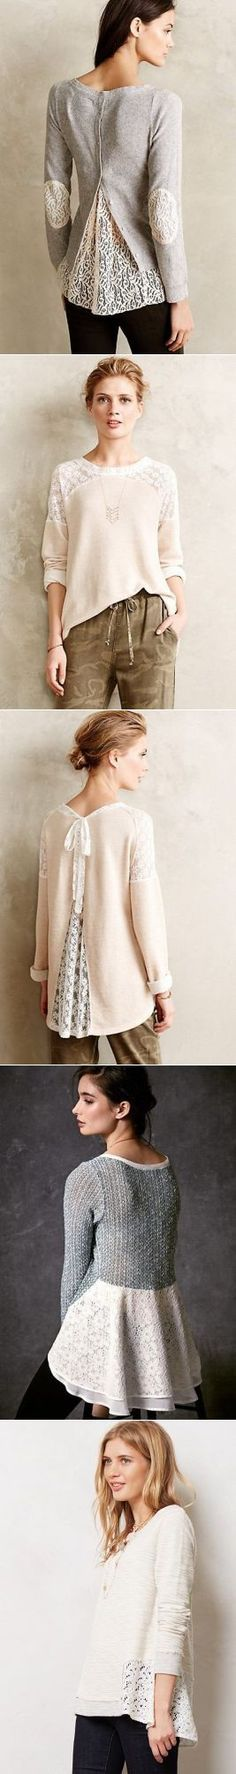 ❤ Love these lace upcycled sweaters! Great inspirations. Свитер кружево